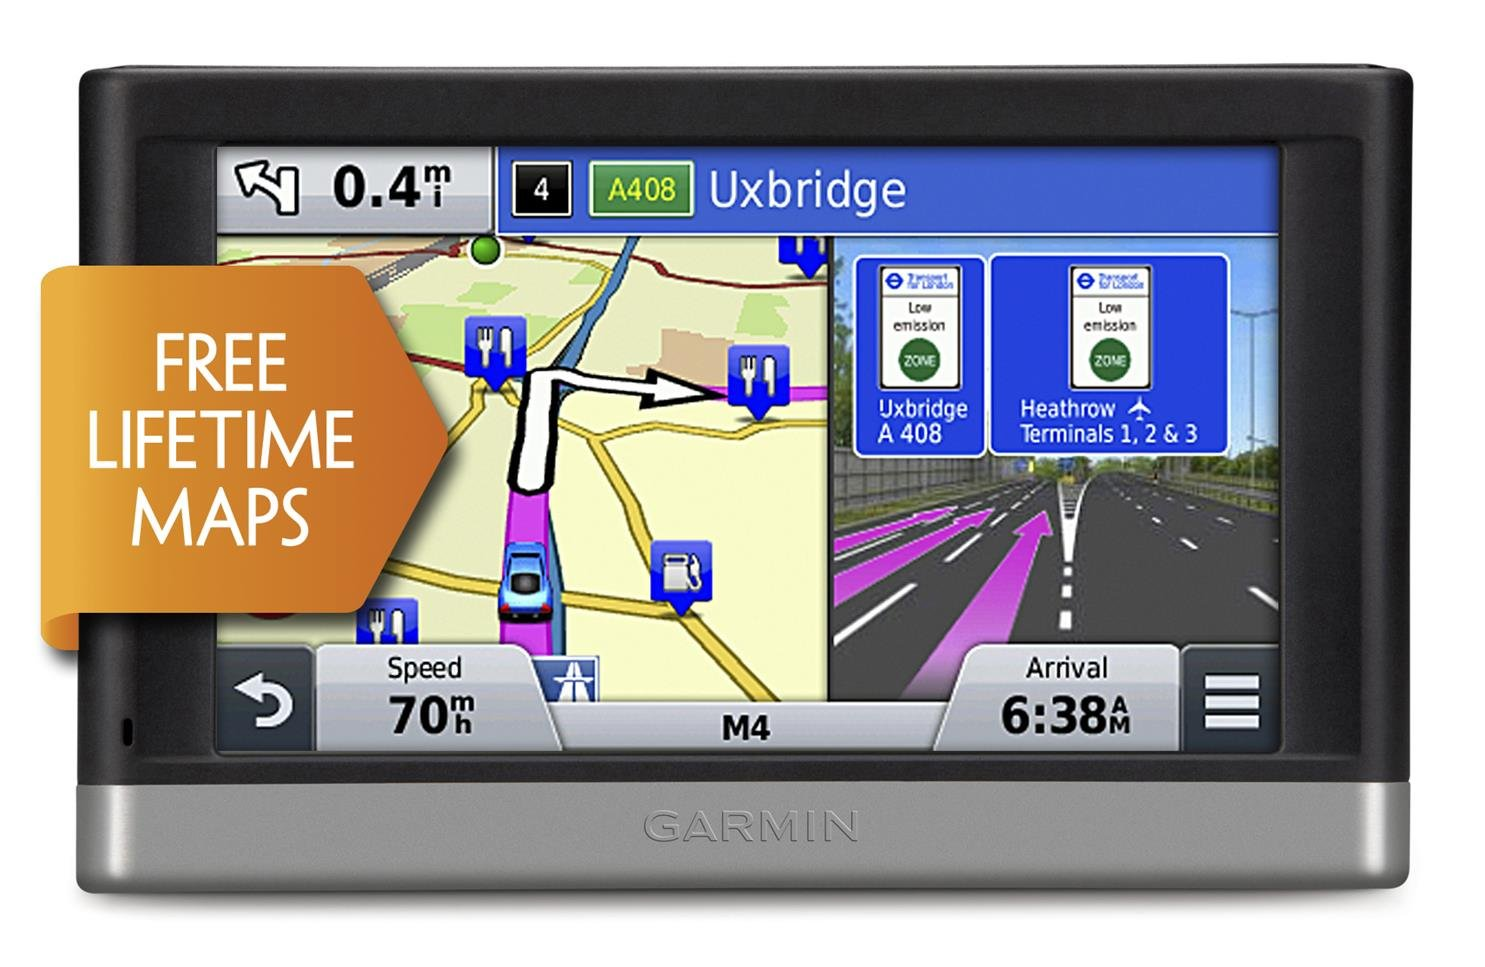 garmin nuvi lm  inch satellite navigation with uk and western europemaps and free lifetime map updates amazoncouk electronics. garmin nuvi lm  inch satellite navigation with uk and